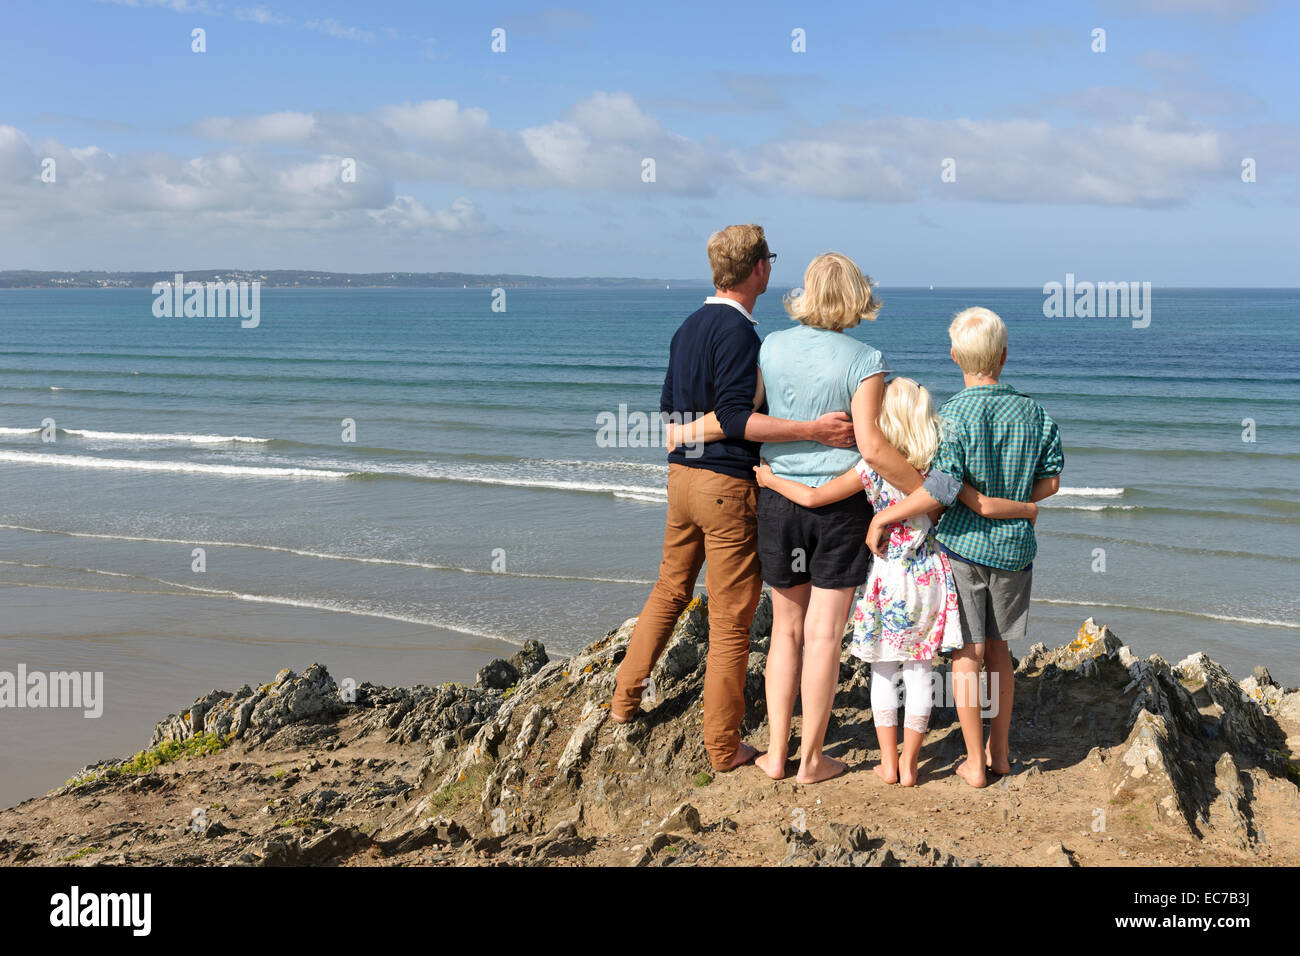 France, Bretagne, Finistere, family with two children looking together at Atlantic - Stock Image